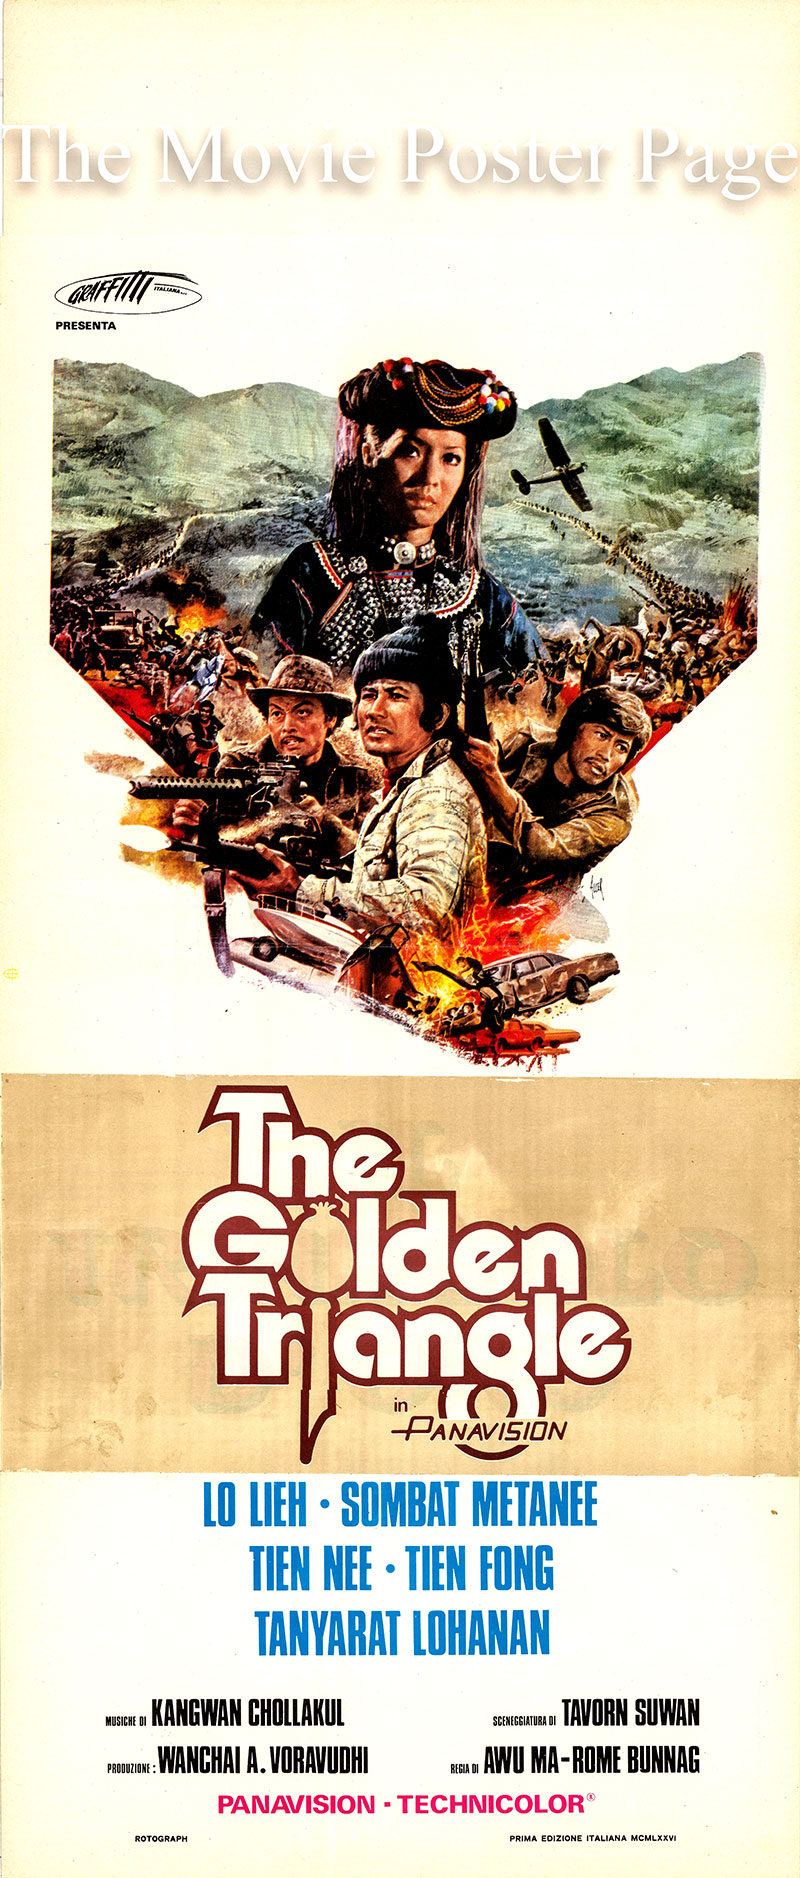 Pictured is an Italian promotional poster for the 1975 Rome Bunnag and Ma Wu film The Golden Triangle starring Lieh Lo.